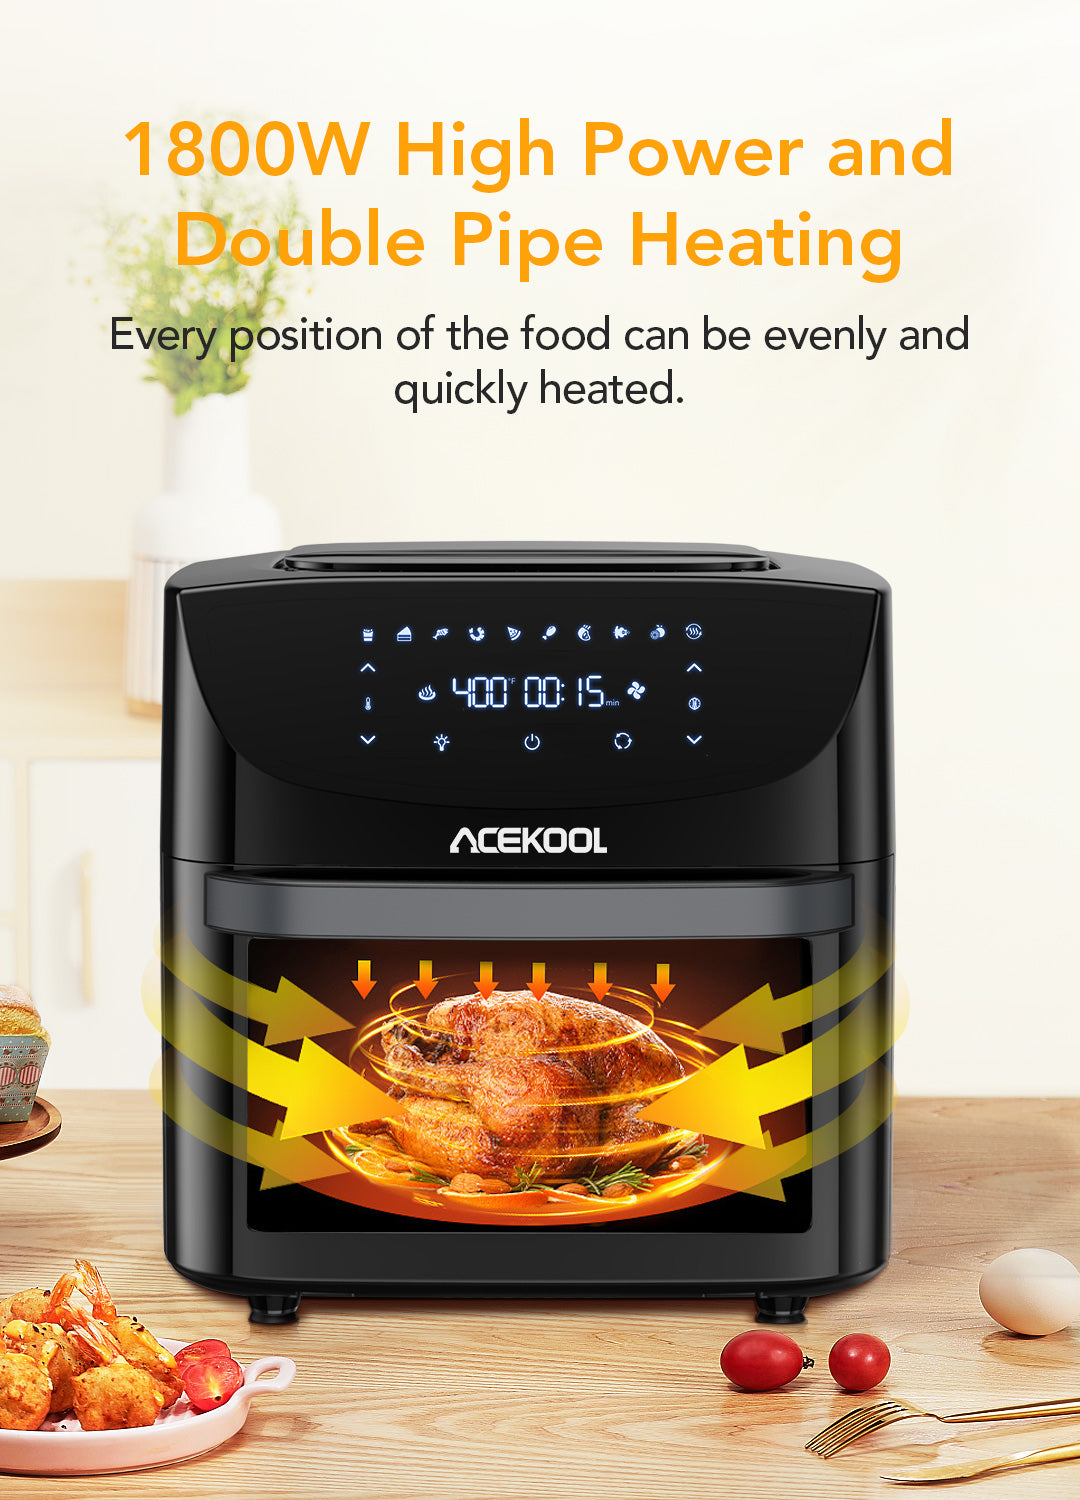 Acekool Air Fryer FT1 comes with 7 parts